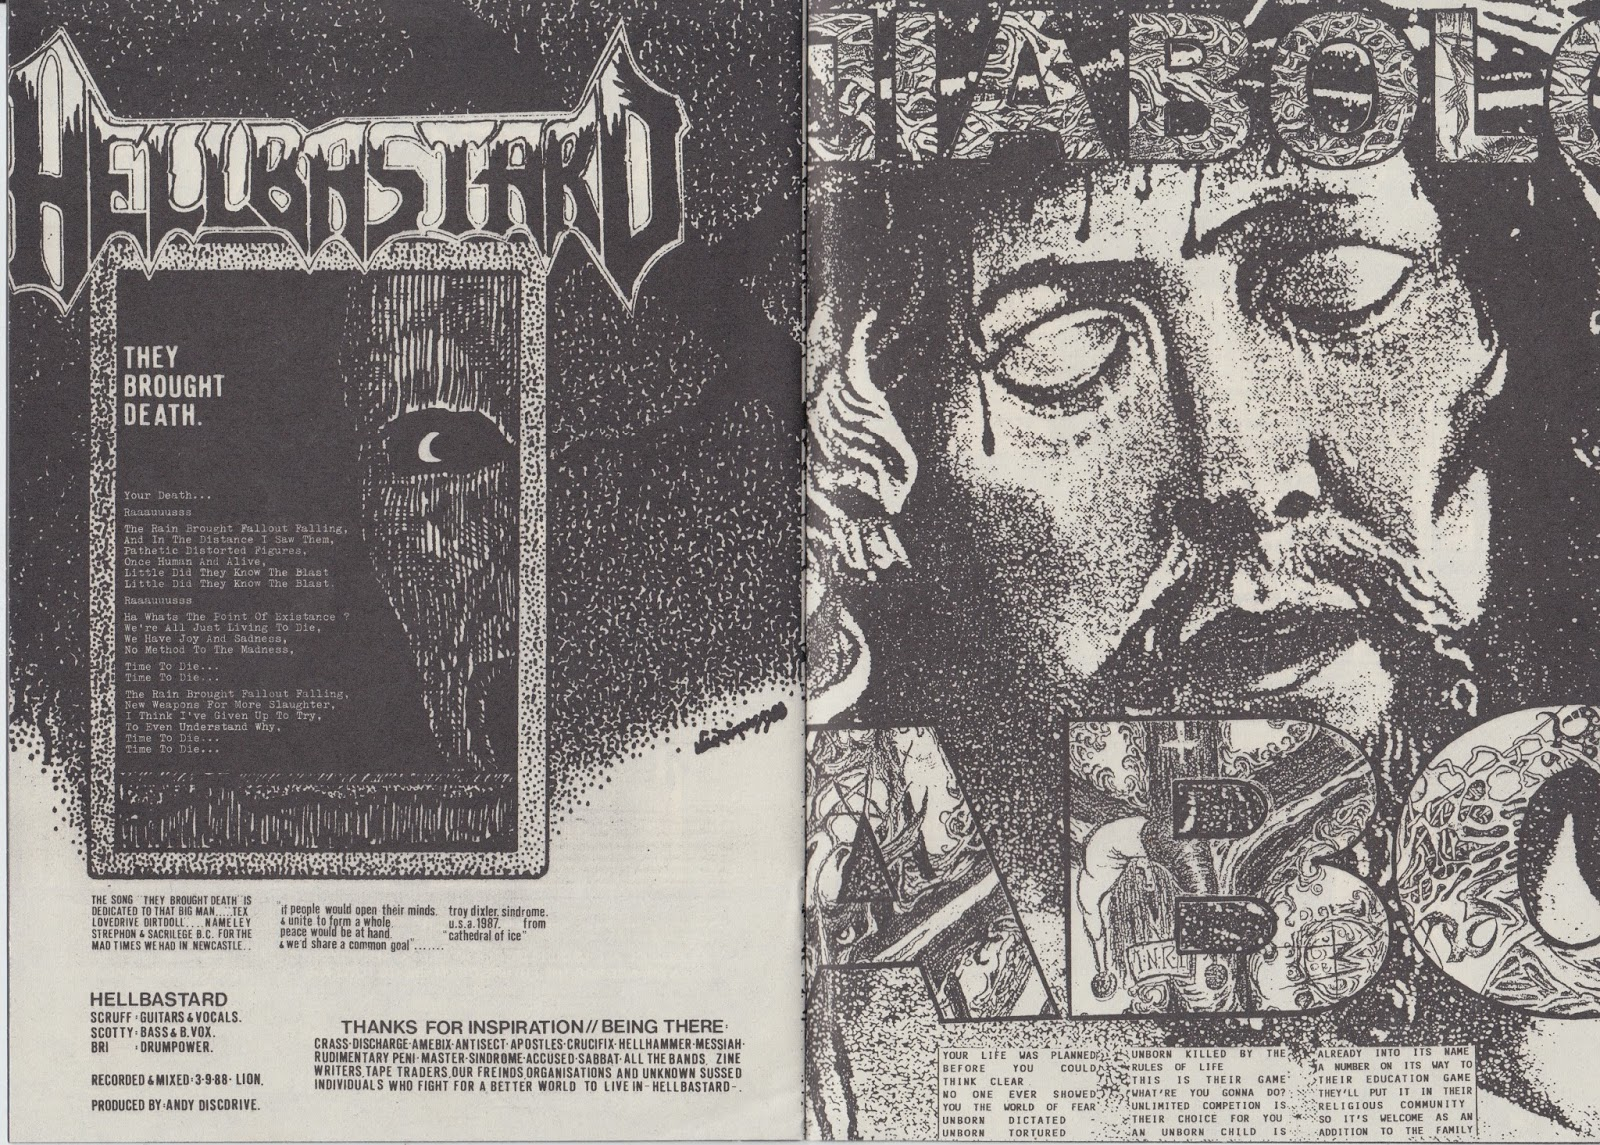 Terminal sound nuisance whispers compilation 2xlp ep 1996 hellbastard probably the most surprising band on whispers and the only song that was recorded in the 80s 1988 genre defining music from a band that malvernweather Images